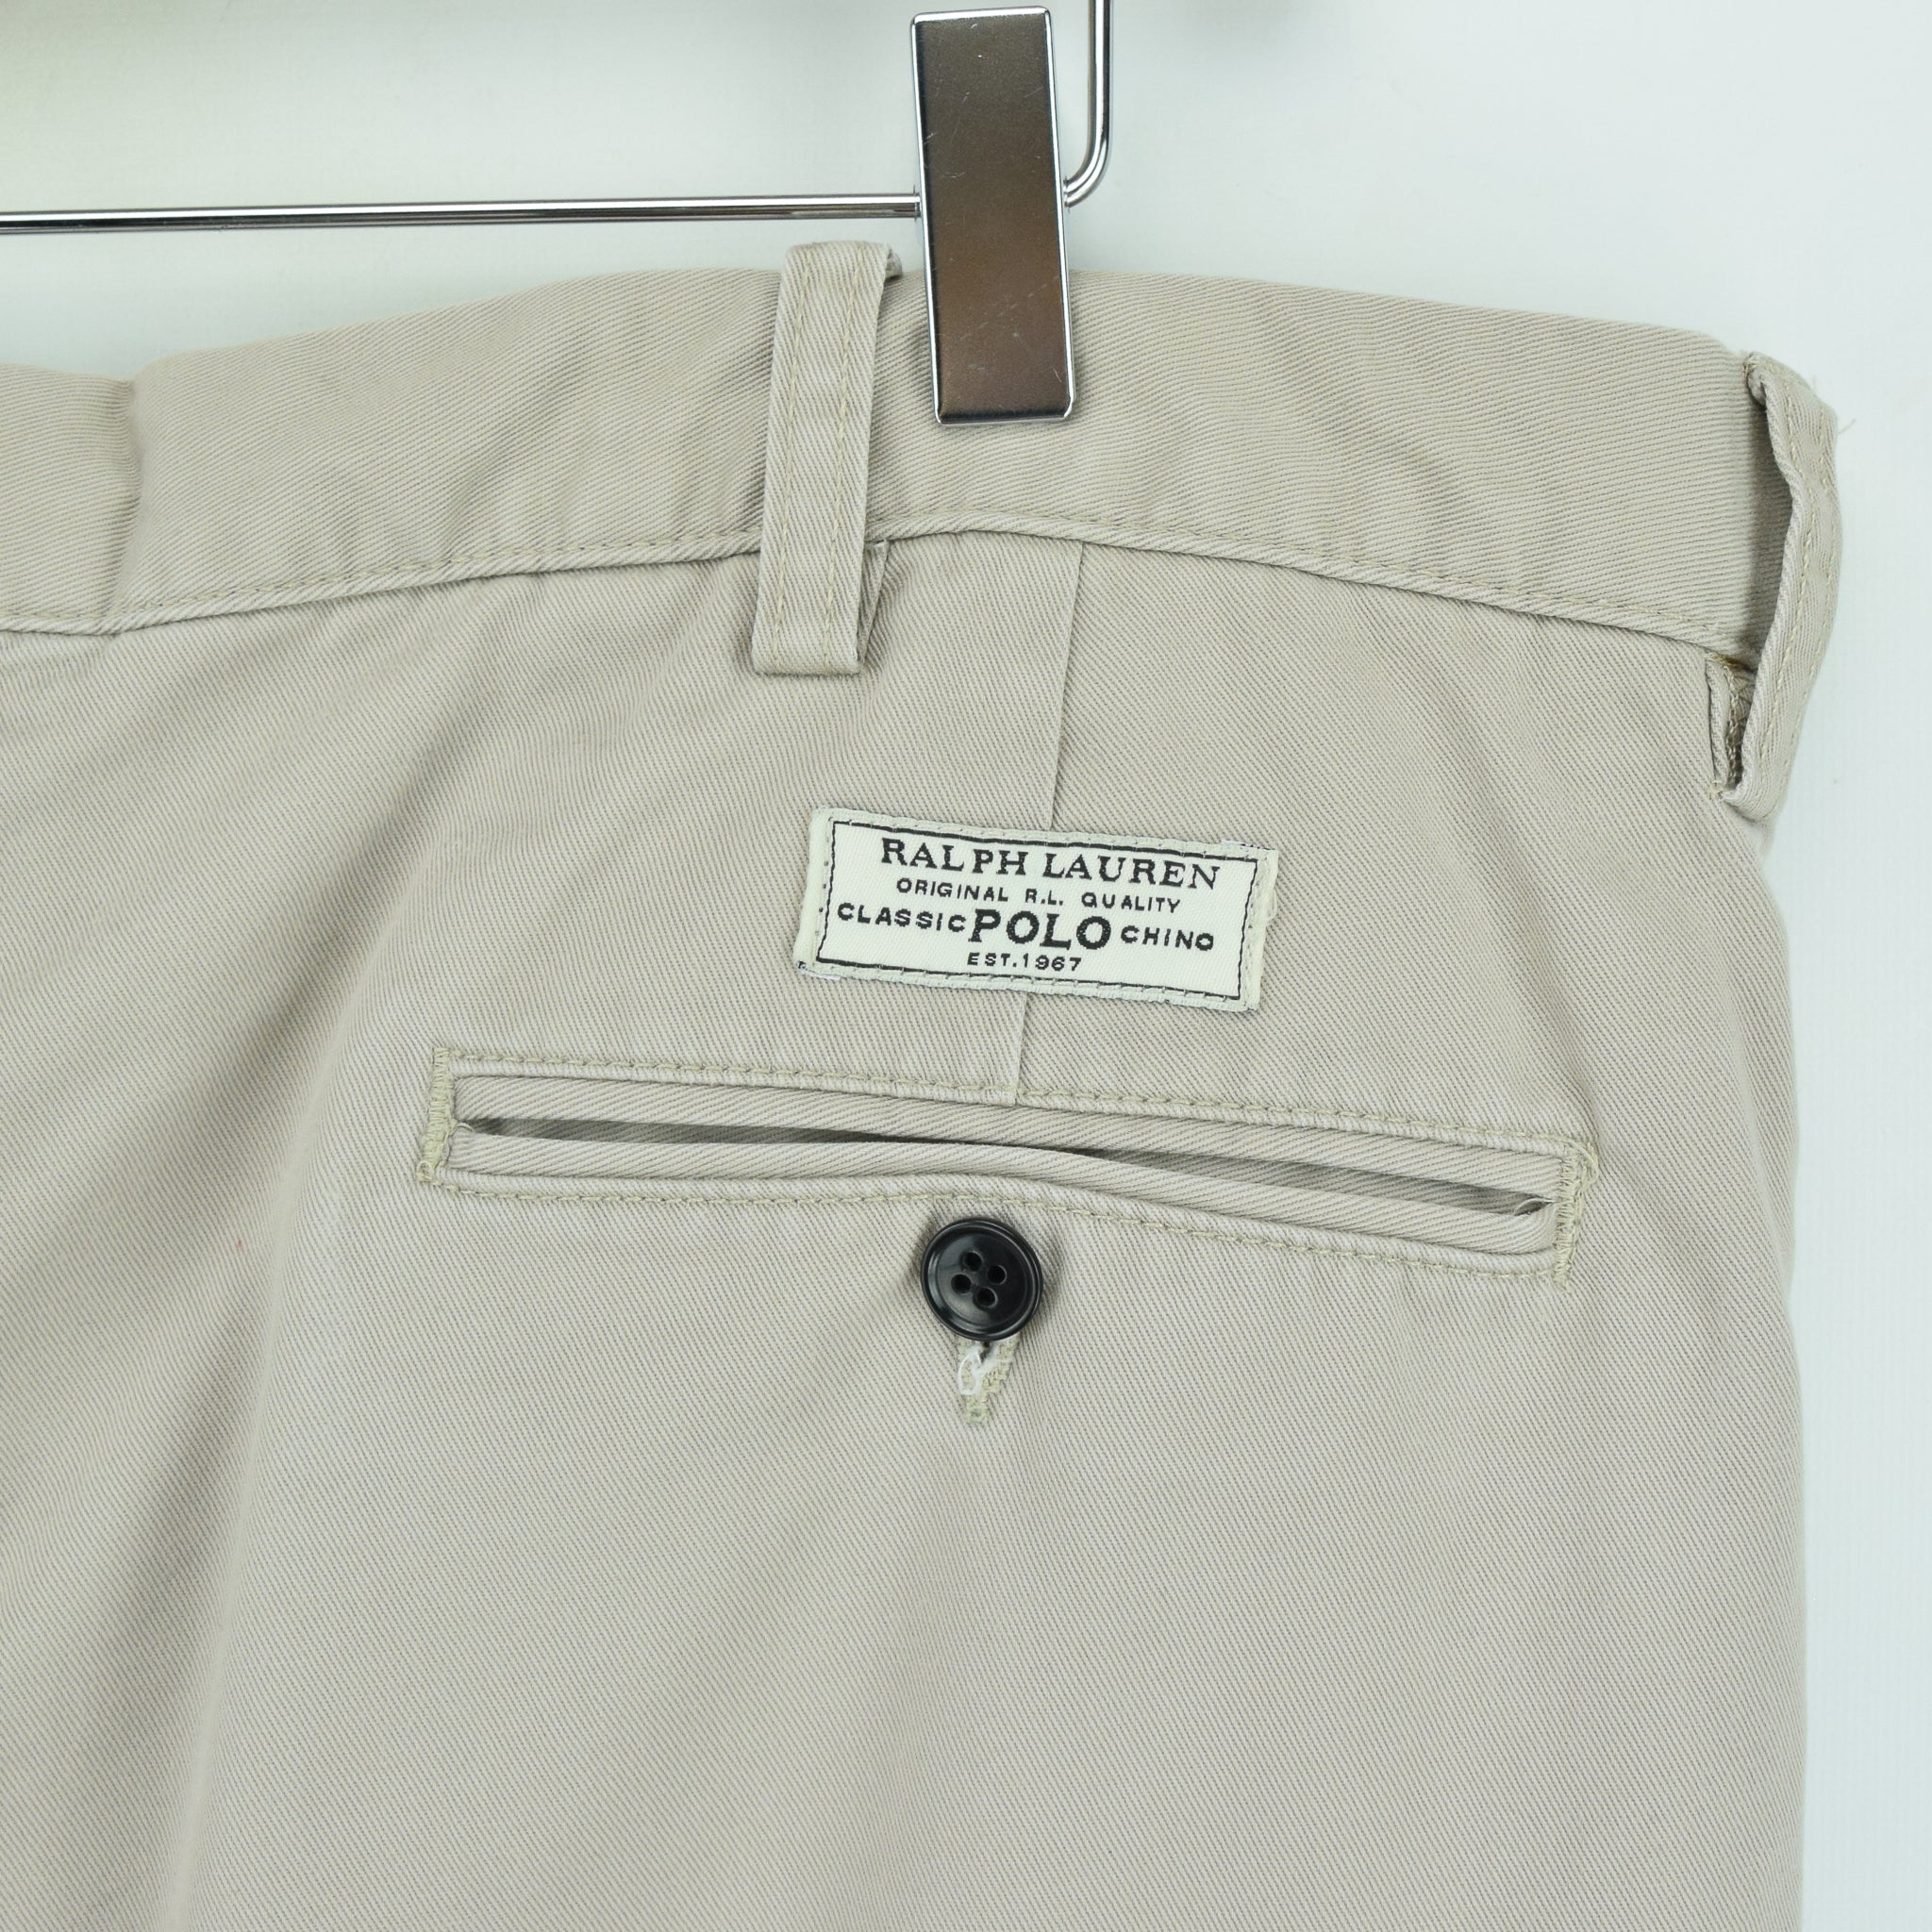 Ralph Lauren Polo Prospect Pant Chinos Stone Pleated Front Trousers 36 W 34 L back waist pocket label